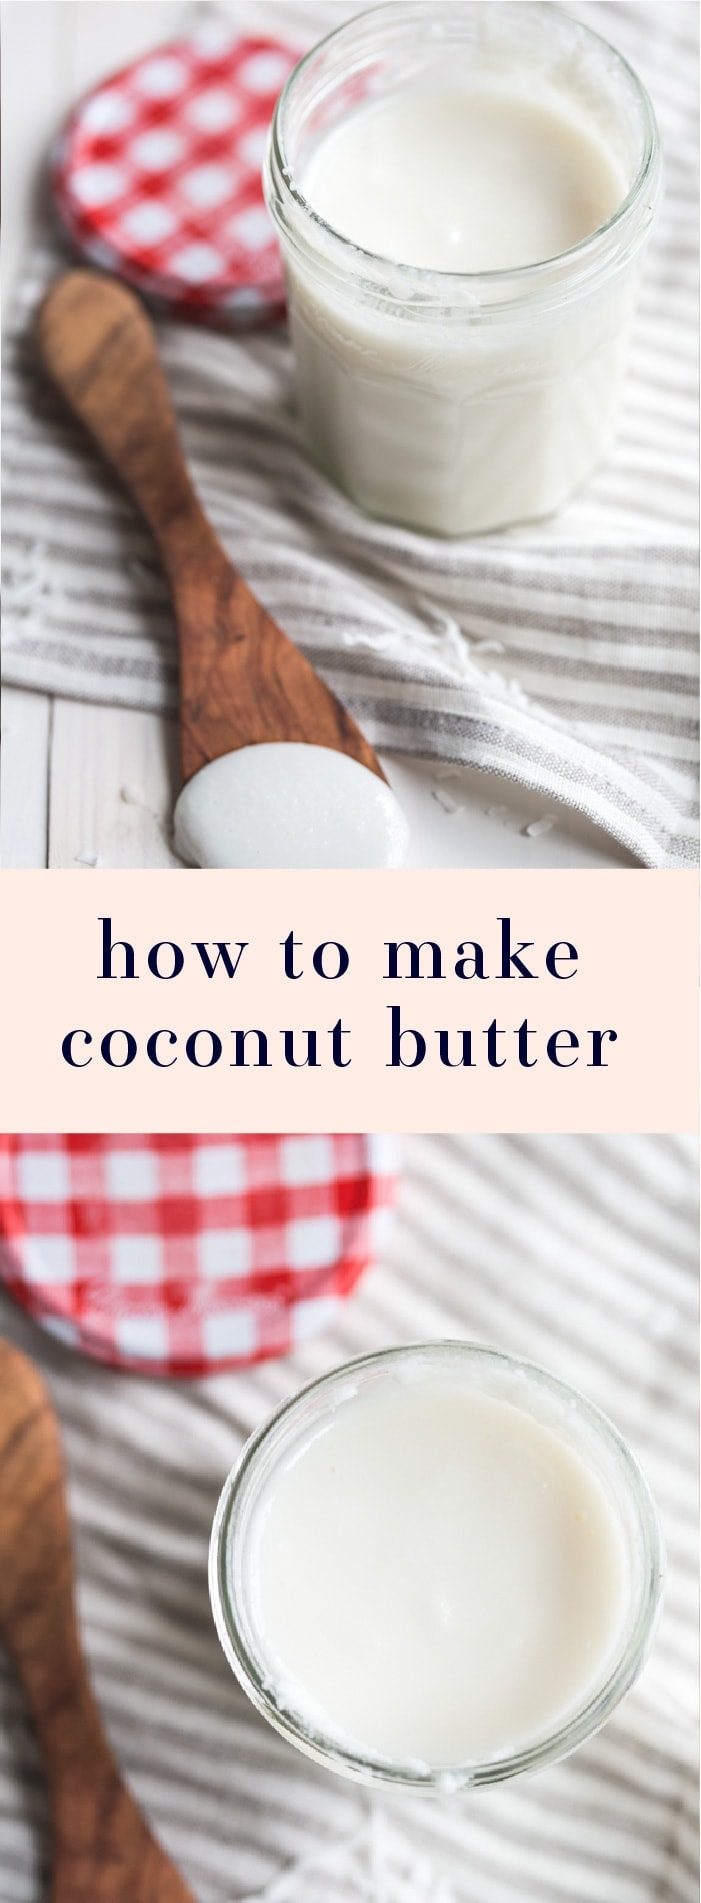 Every wondered how to make coconut butter? It's beyond easy and very budget-friendly (unlike the storebought stuff)! Perfect for making my paleo coconut cream eggs or just spreading on toast, check out this article to find out how to make coconut butter with only 1 ingredient and 3 minutes.